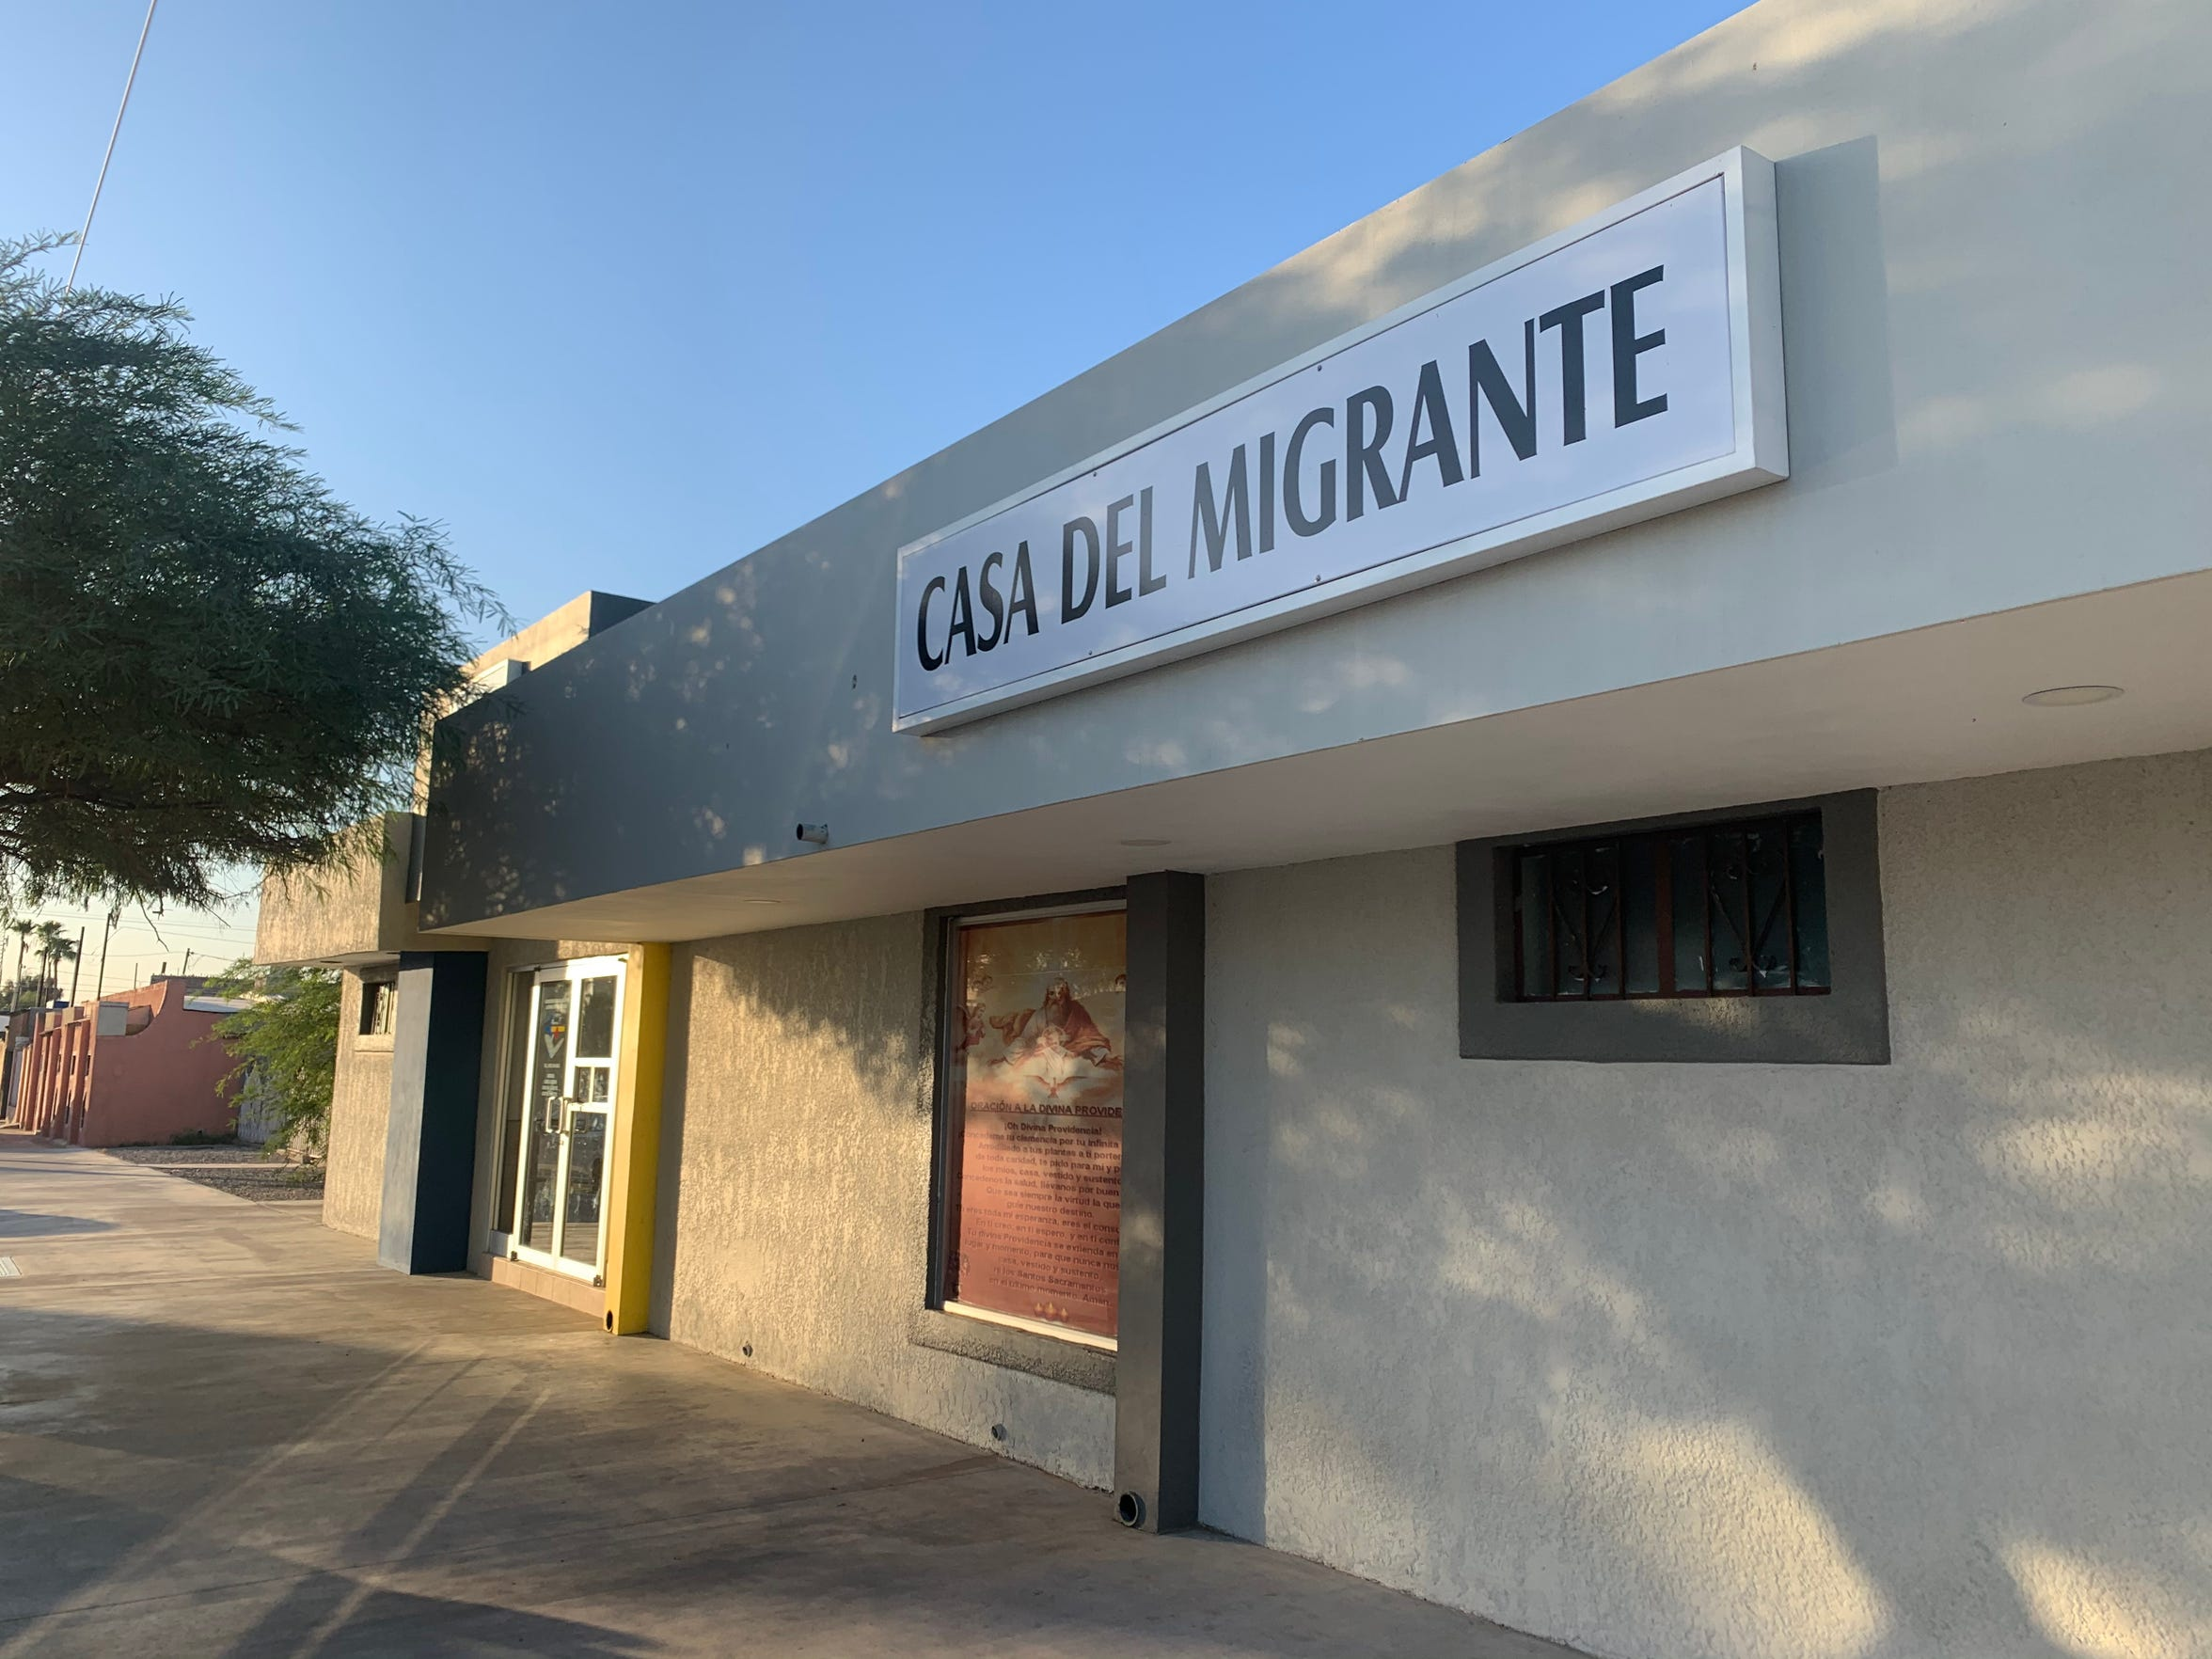 Casa del Migrante La Divina Providencia, the lone shelter in San Luis Rio Colorado, has taken over administration of the list of asylum seekers waiting to present their claims at the San Luis port of entry.